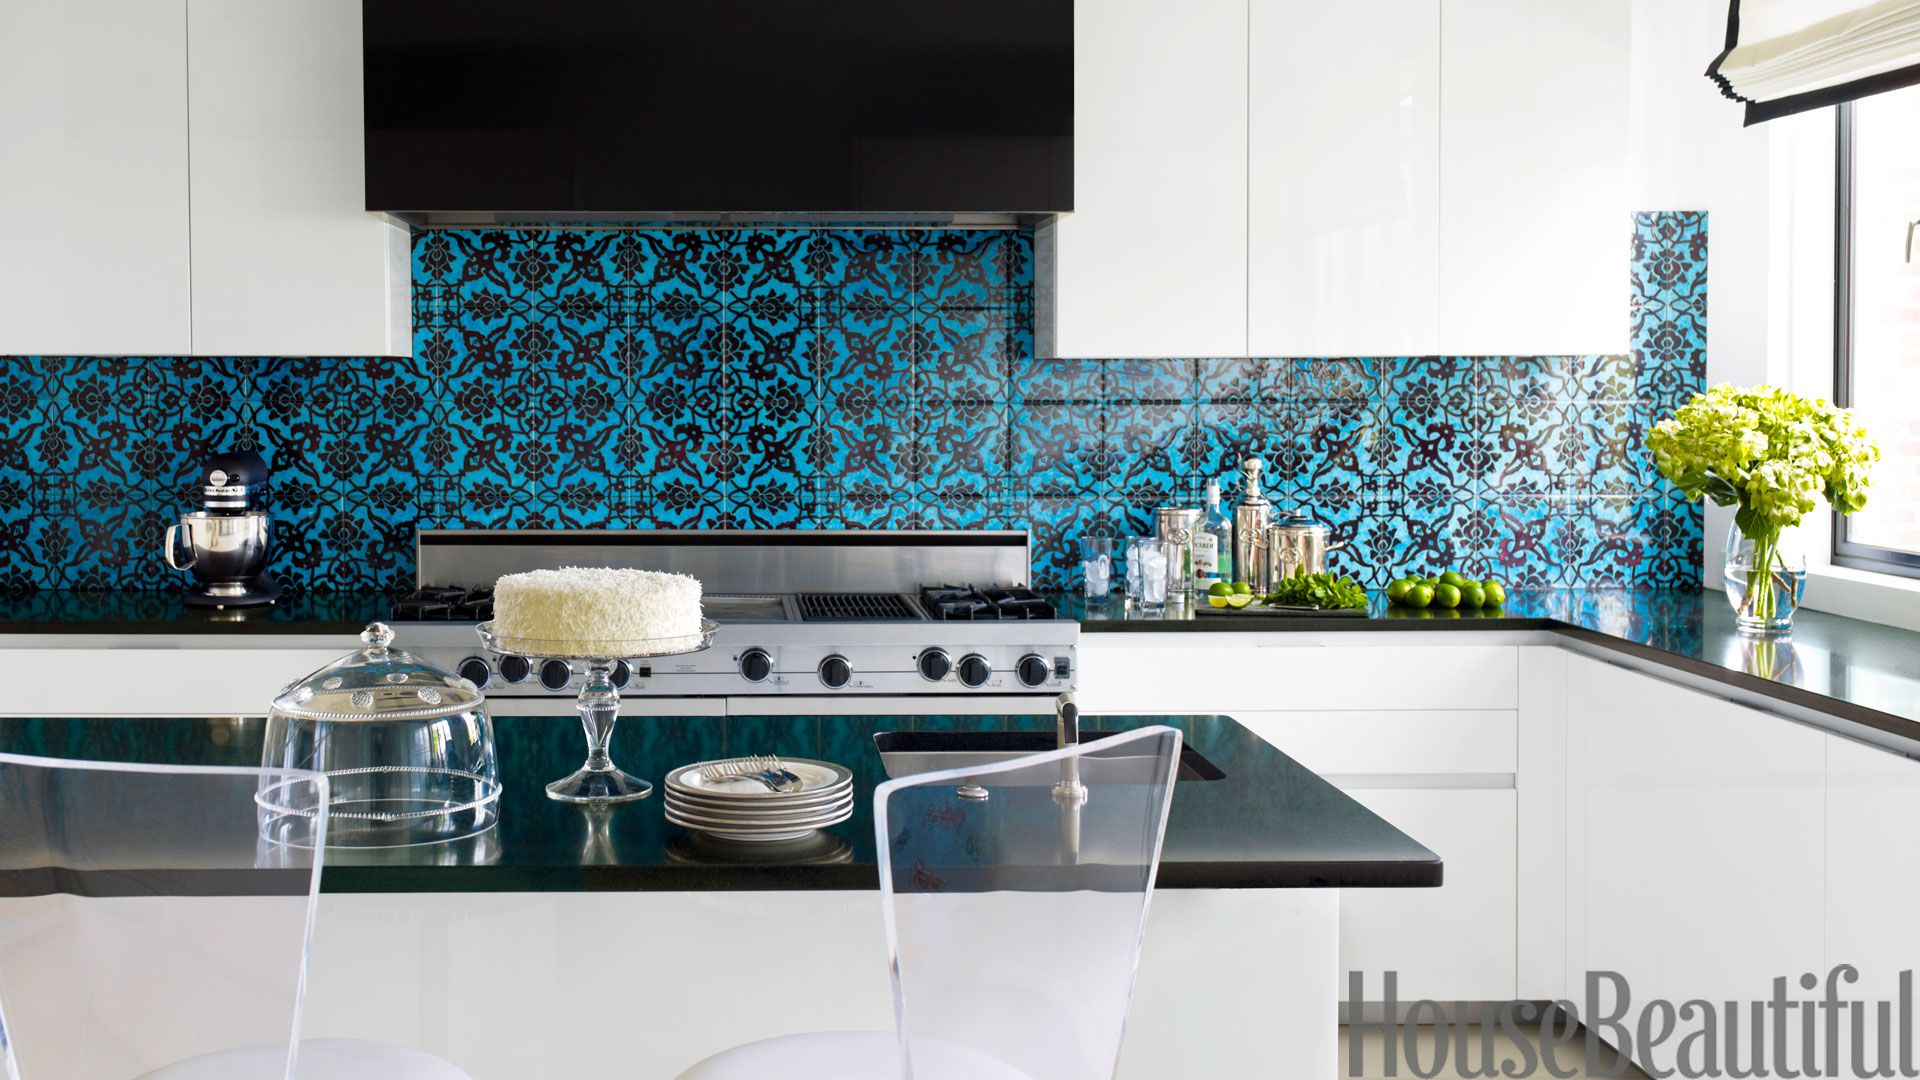 53 Best Kitchen Backsplash Ideas Tile Designs for Kitchen Backsplashes